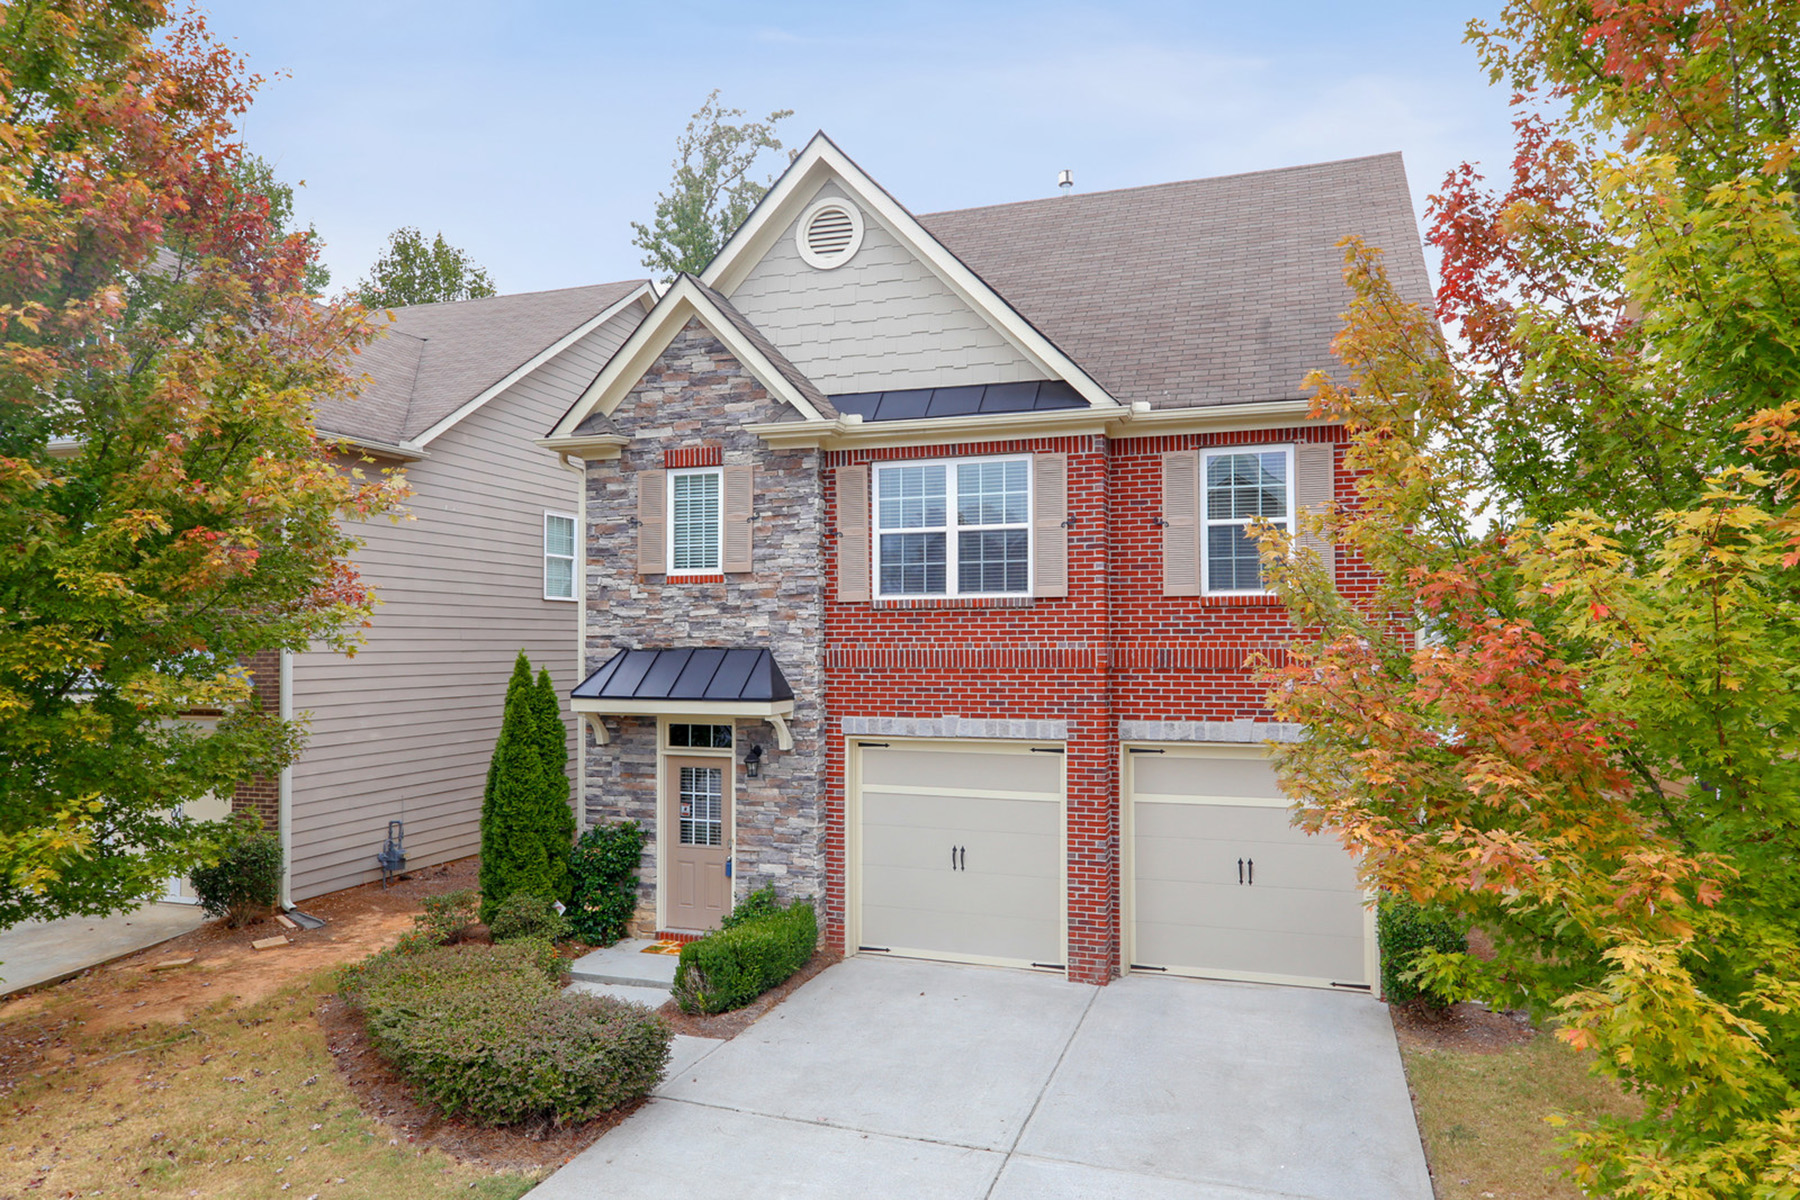 Single Family Homes for Sale at Move-in Ready Open Floor Plan 1649 Sentinel View Dr, Lawrenceville, Georgia 30043 United States